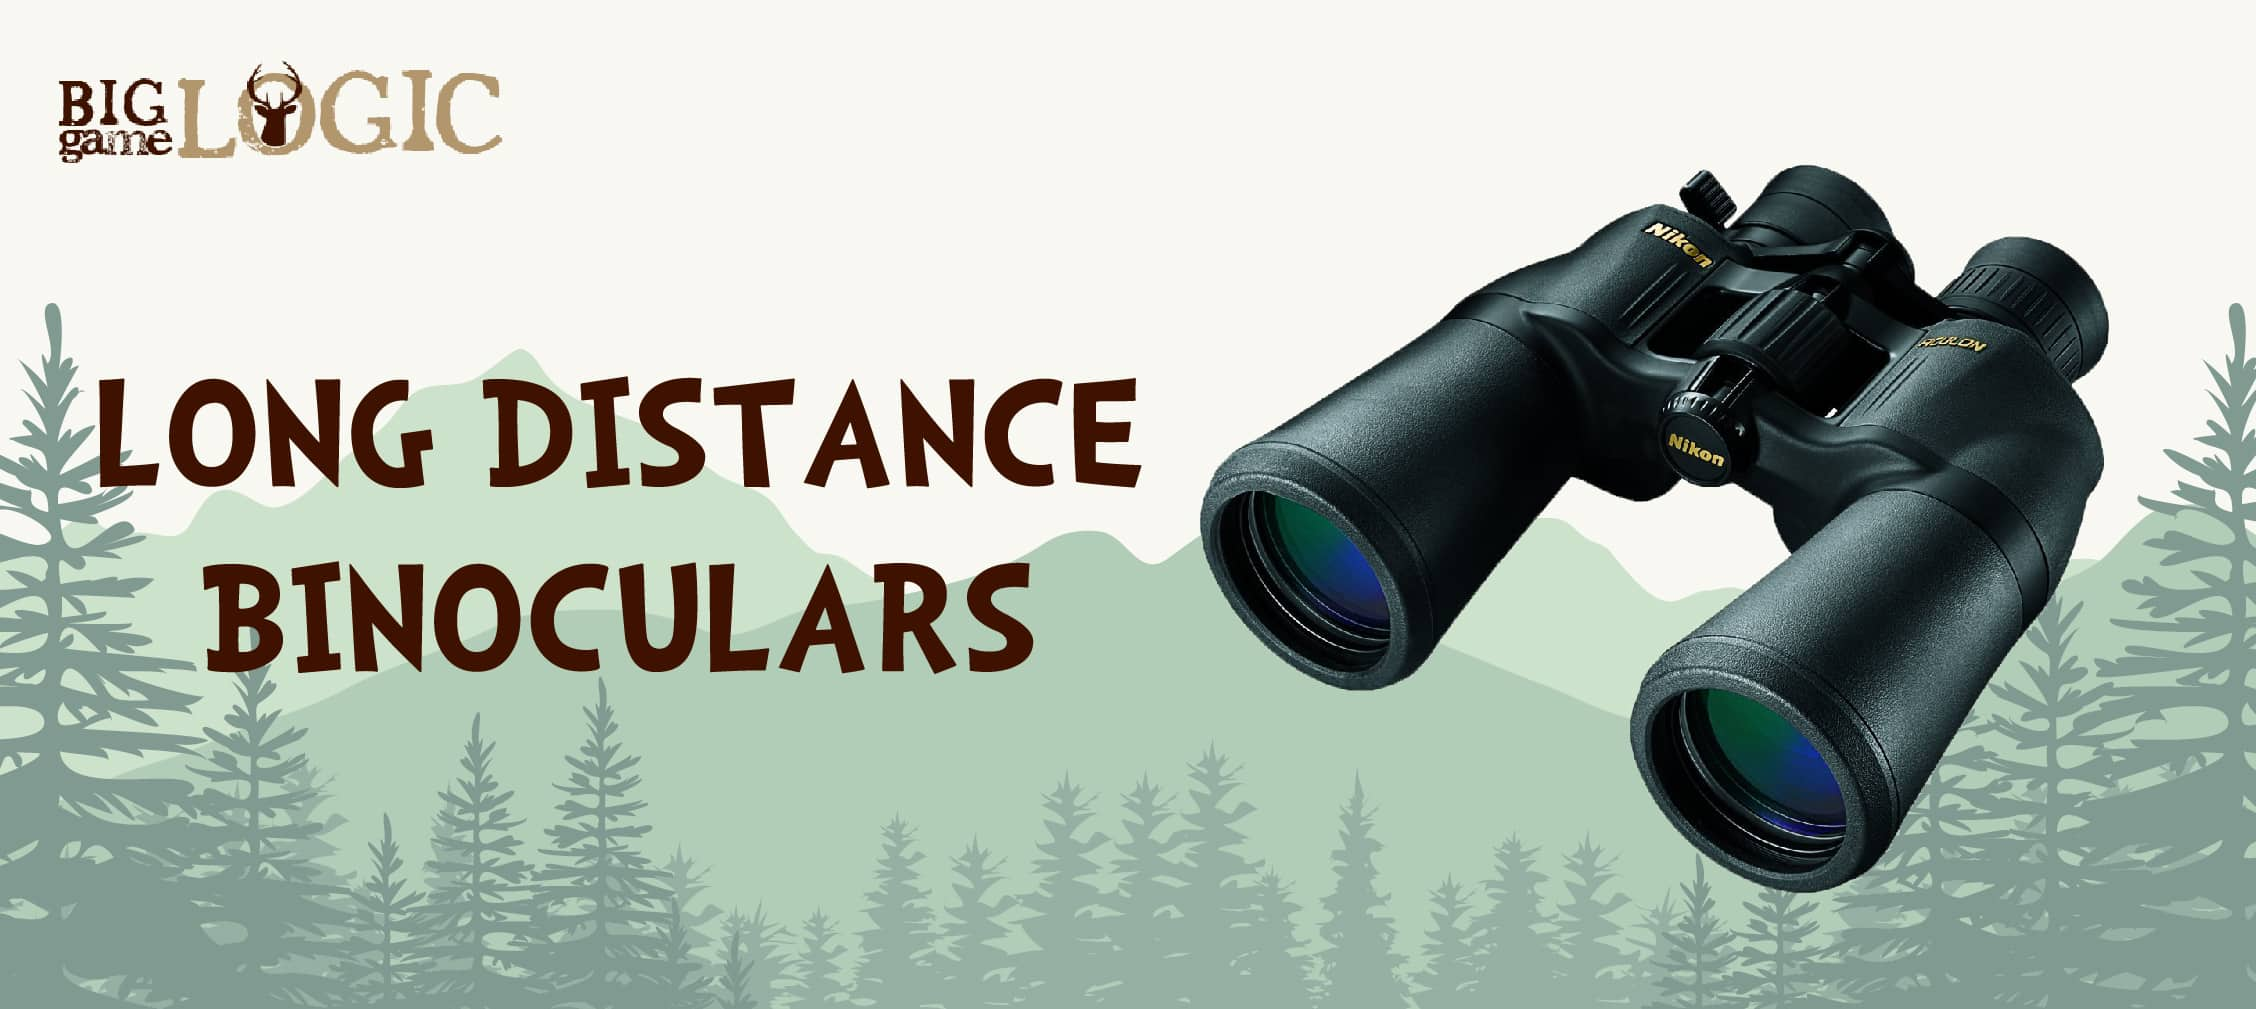 Best Binoculars For Long Distance – 2019 Review - Big Game Logic